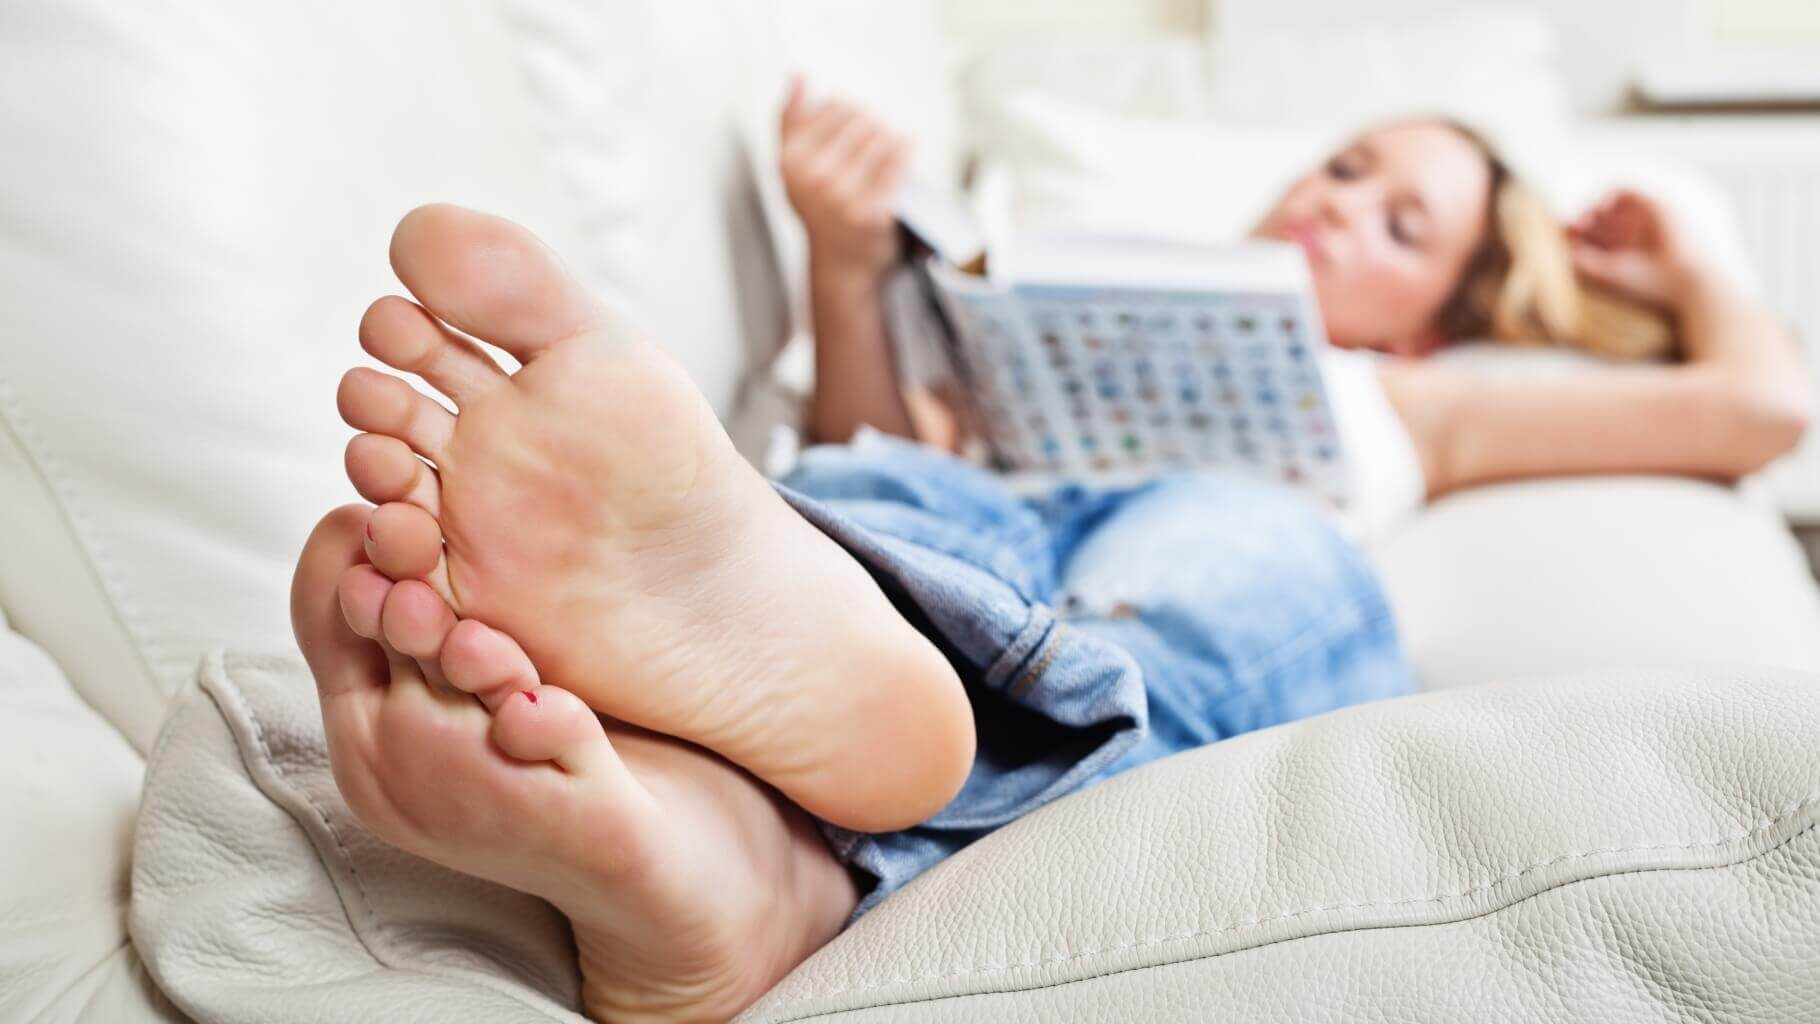 Barefoot young woman lying on sofa and reading book, shallow depth of field, focus on foot soles